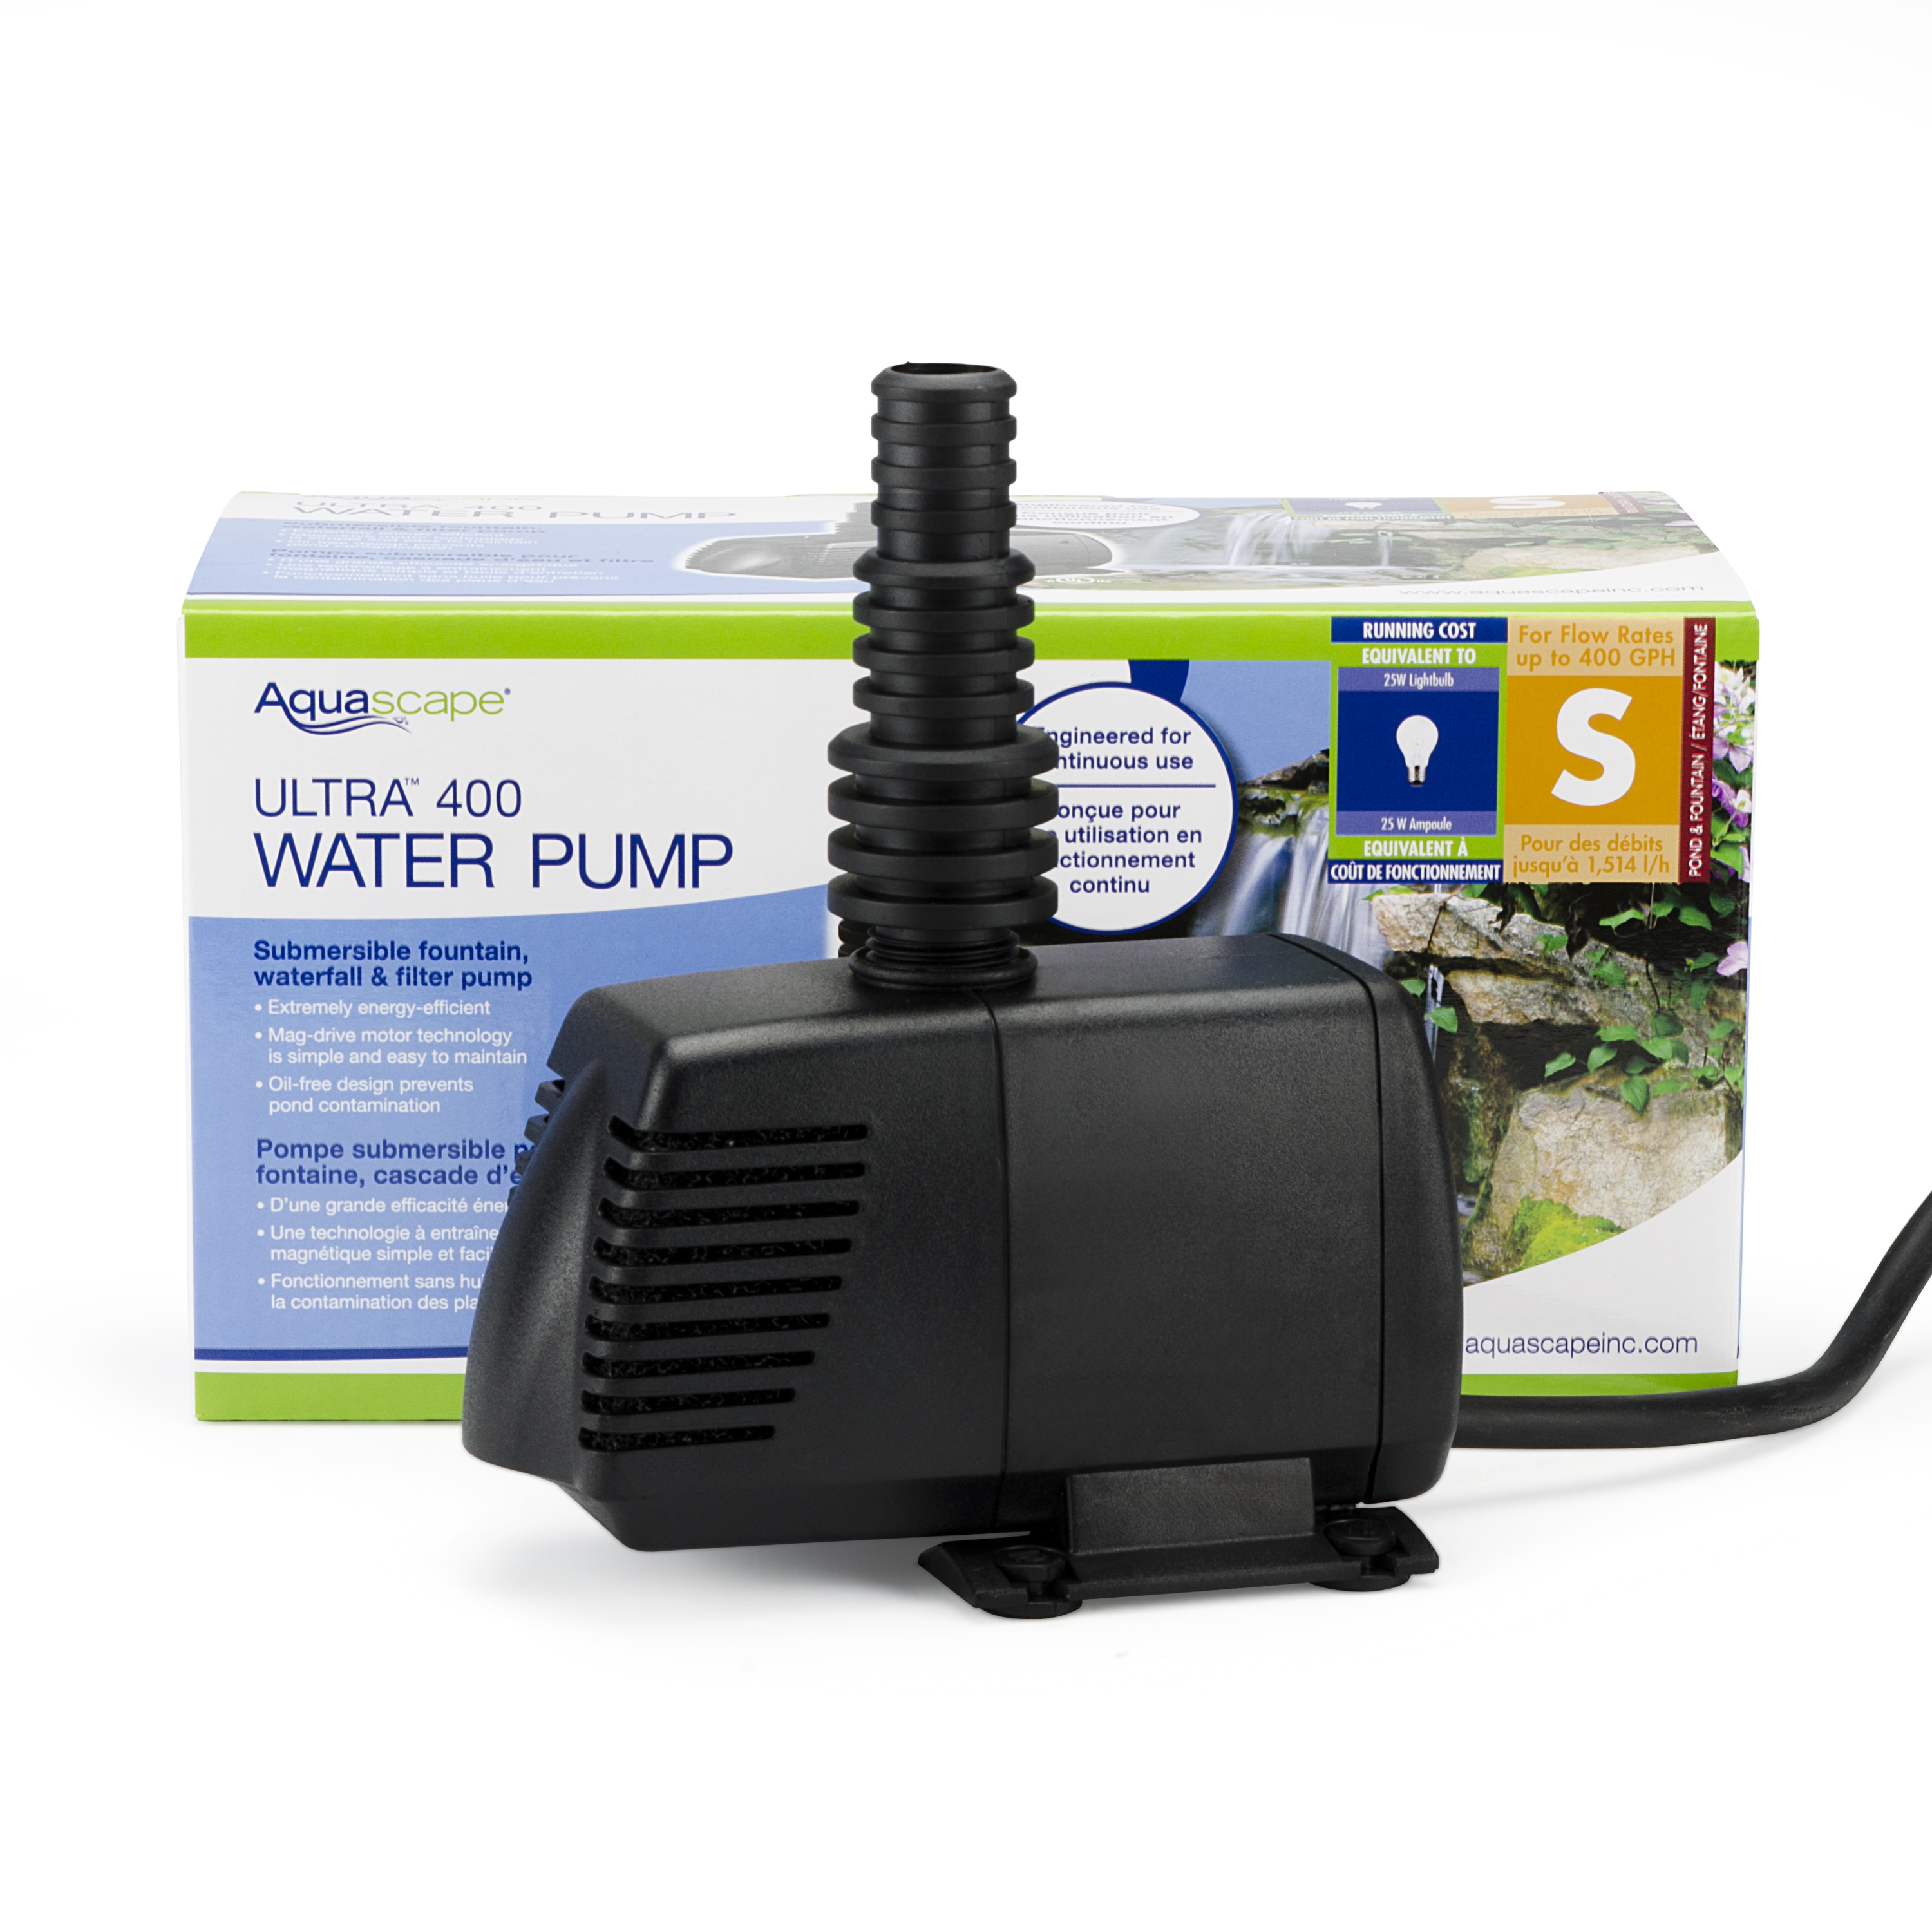 Ultra 400 Water Pump